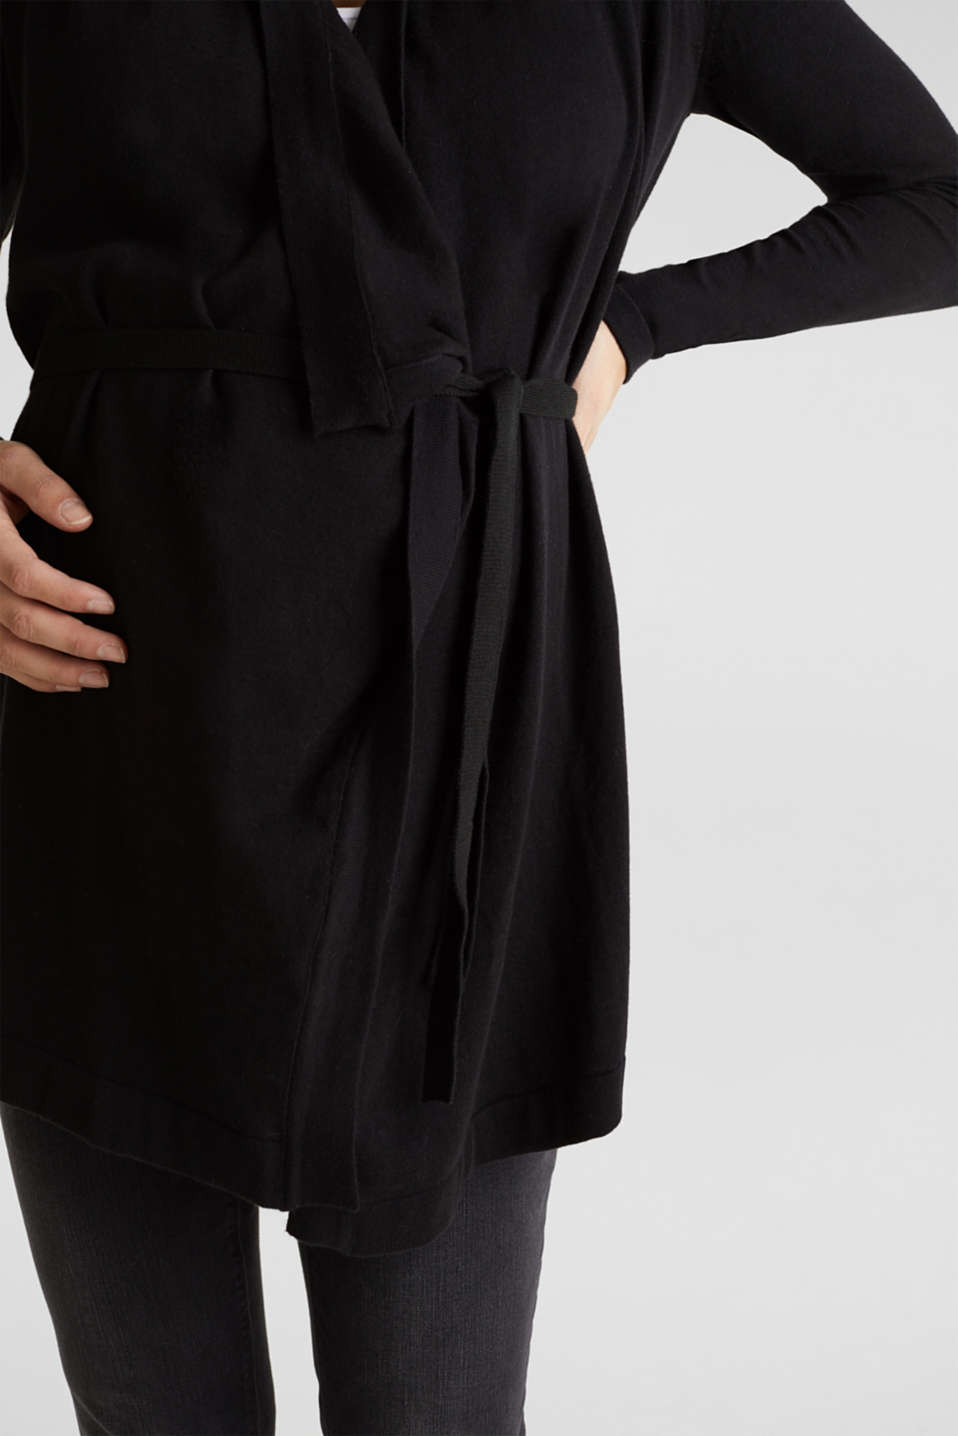 Cardigan with a tie-around belt, 100% cotton, LCBLACK, detail image number 2